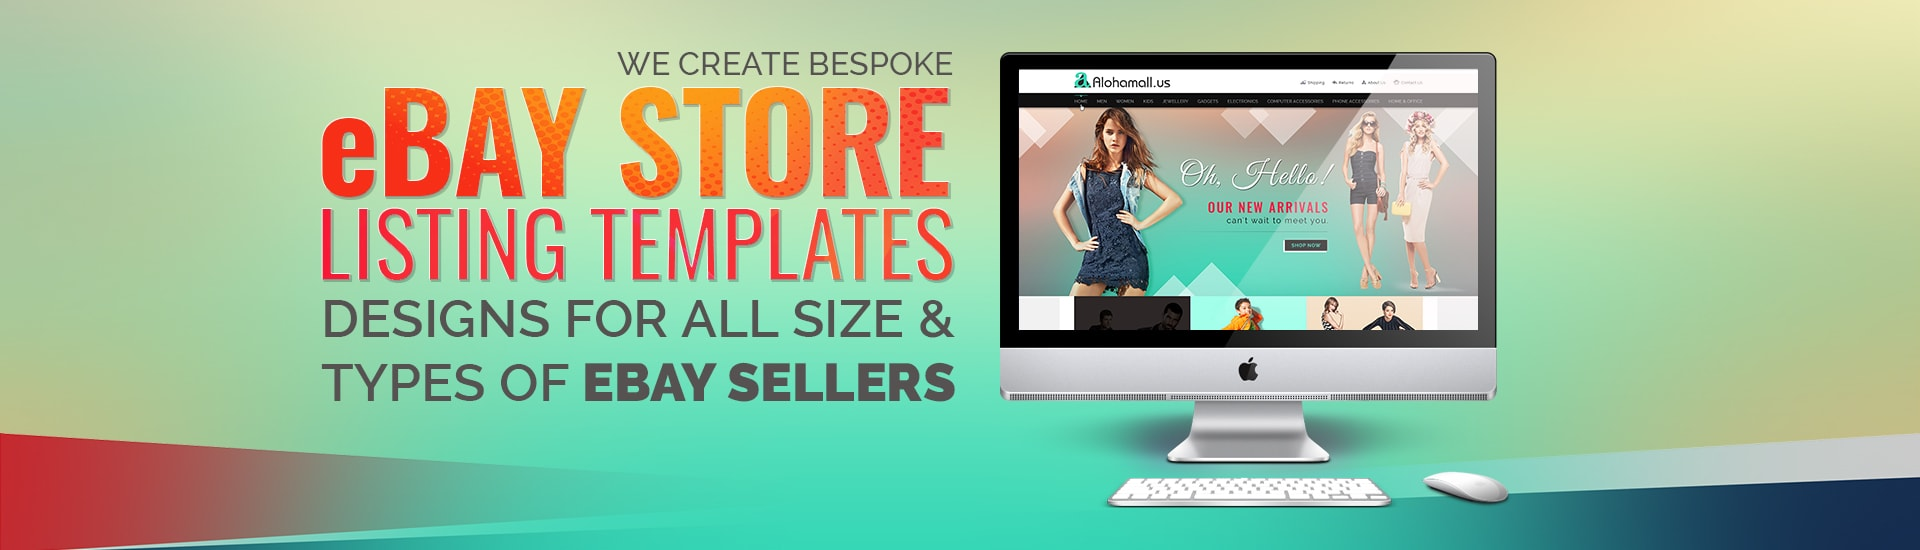 Mobile Friendly eBay Store & Listing Template